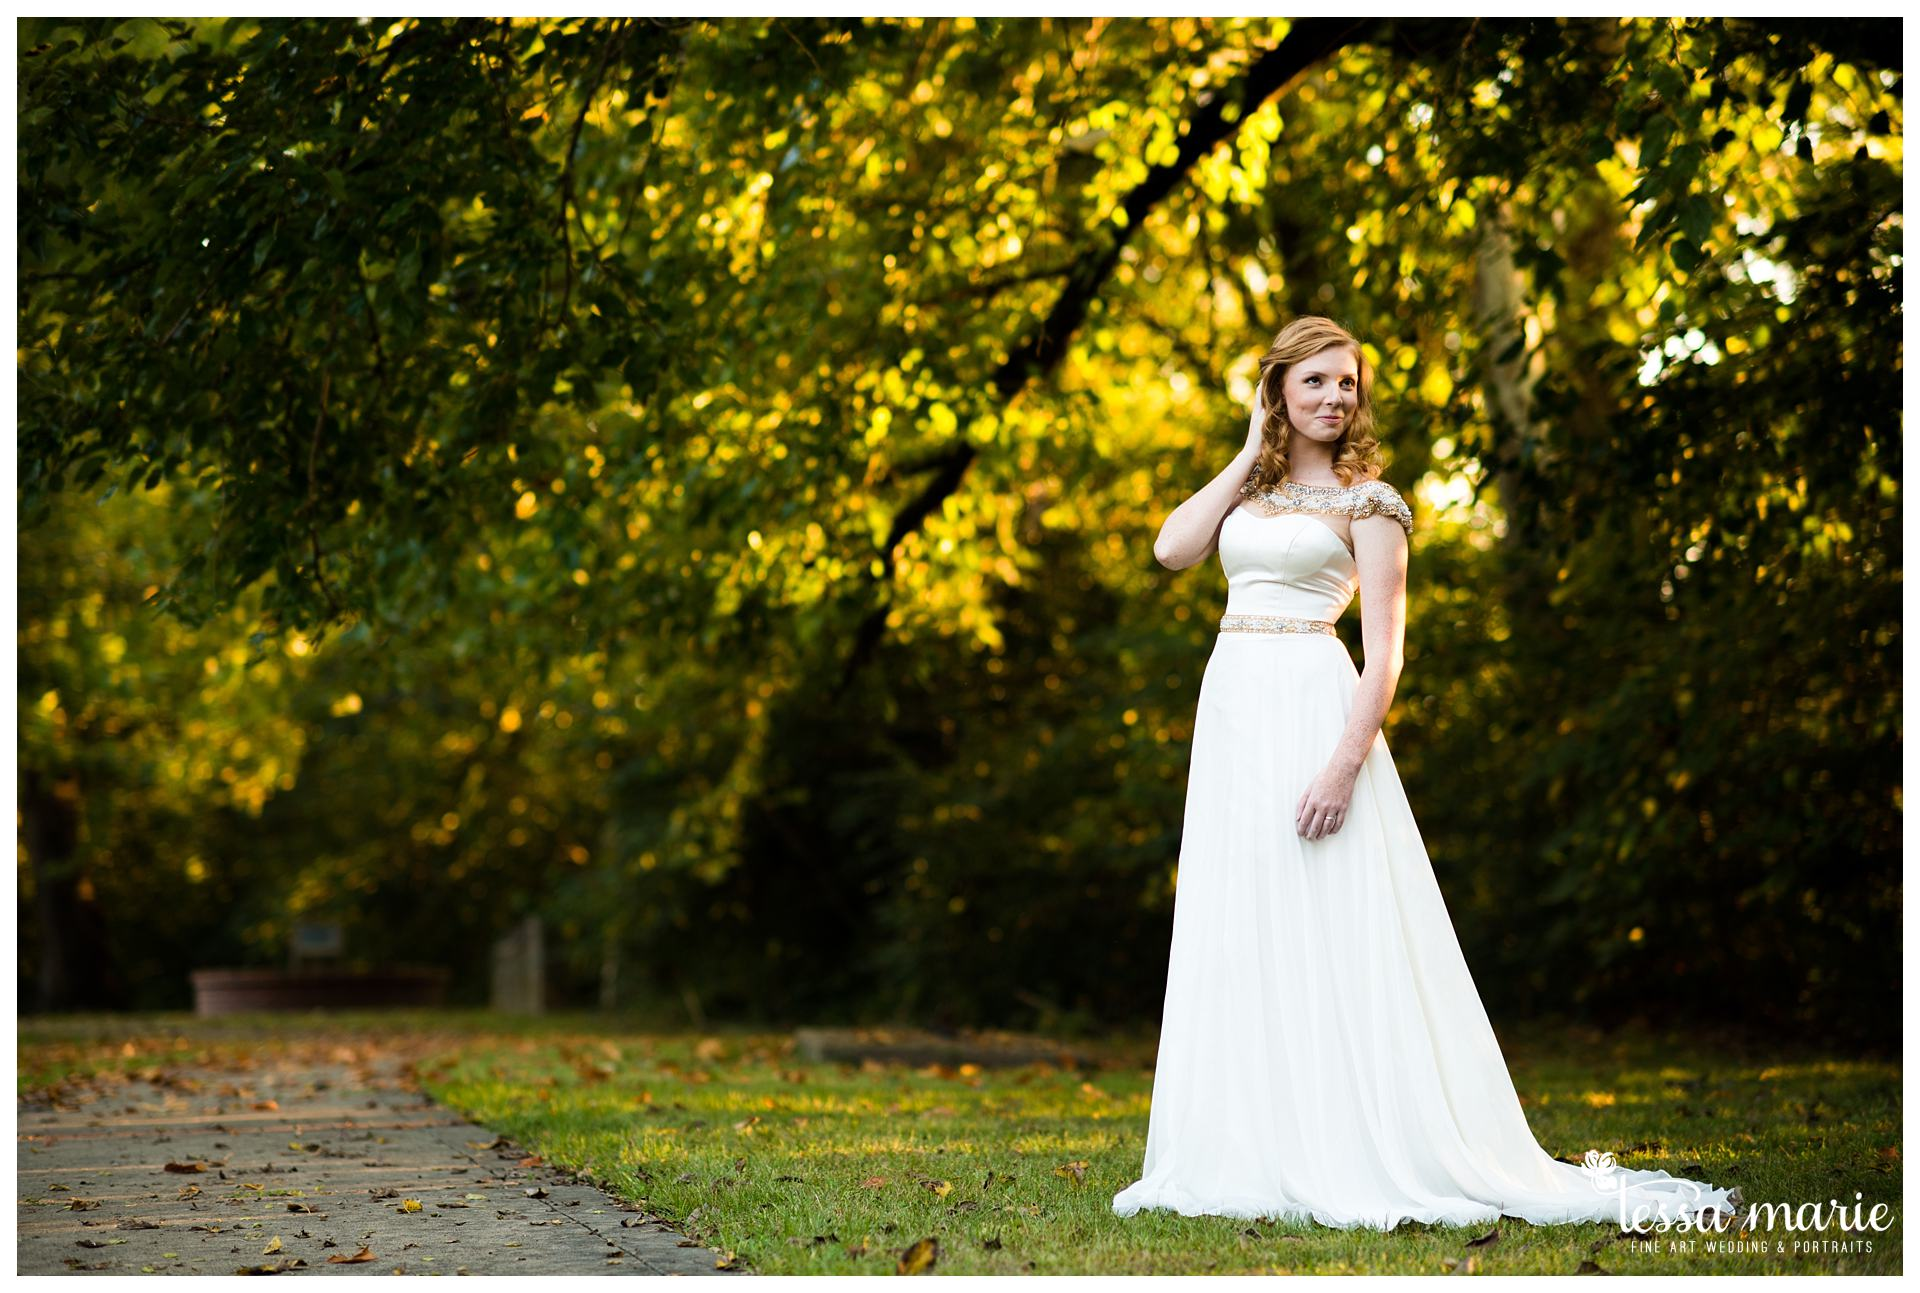 tessa_marie_weddings_legacy_story_focused_wedding_pictures_atlanta_wedding_photographer_family_pictures_portrait_Fine_art_memories_mothers_day_spring_moments_0363